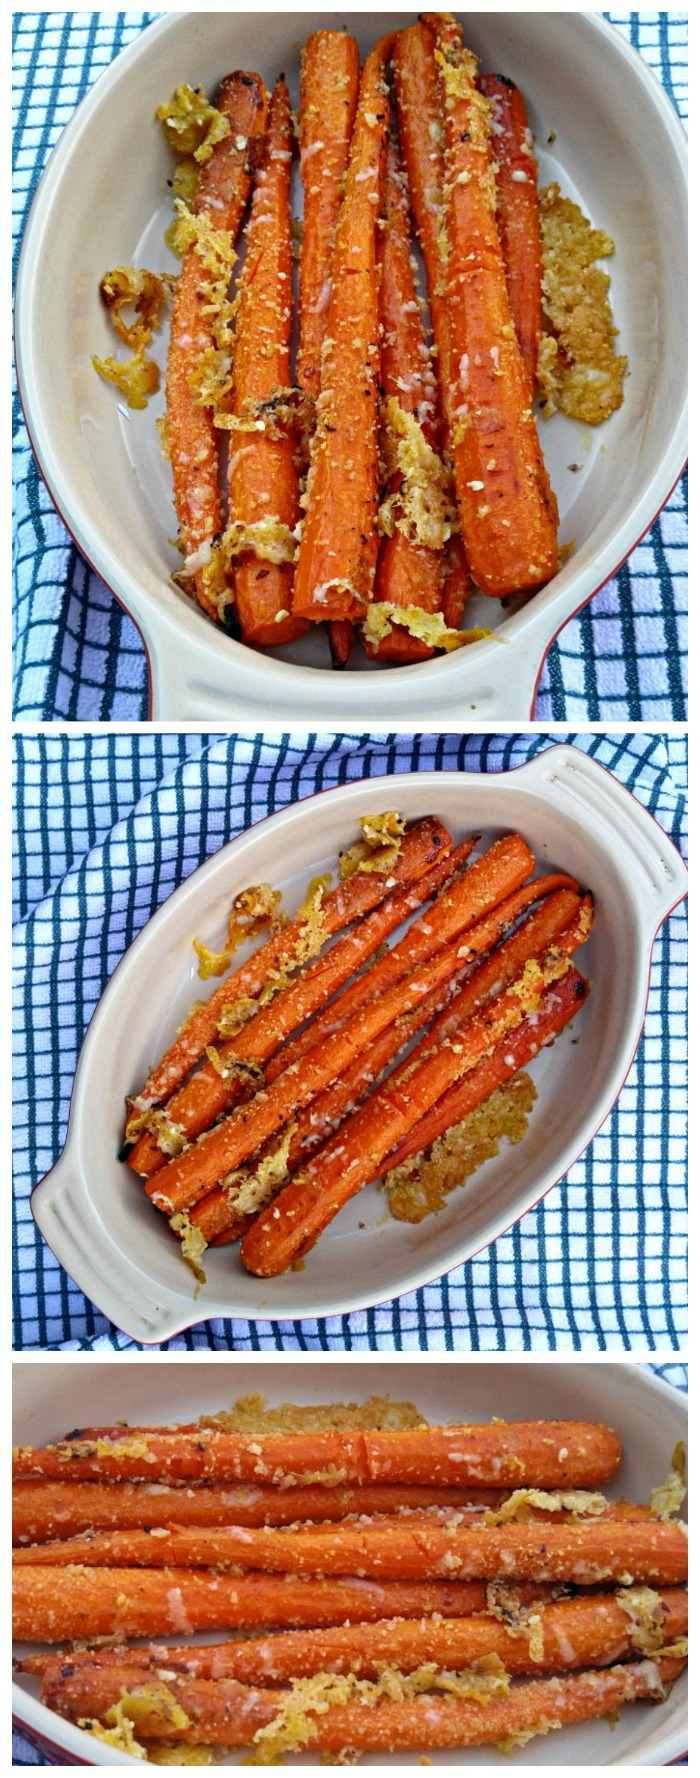 This roasted carrots recipe features a buttery garlic parmesan outside and sweet roasted center. #roastedcarrotrecipe